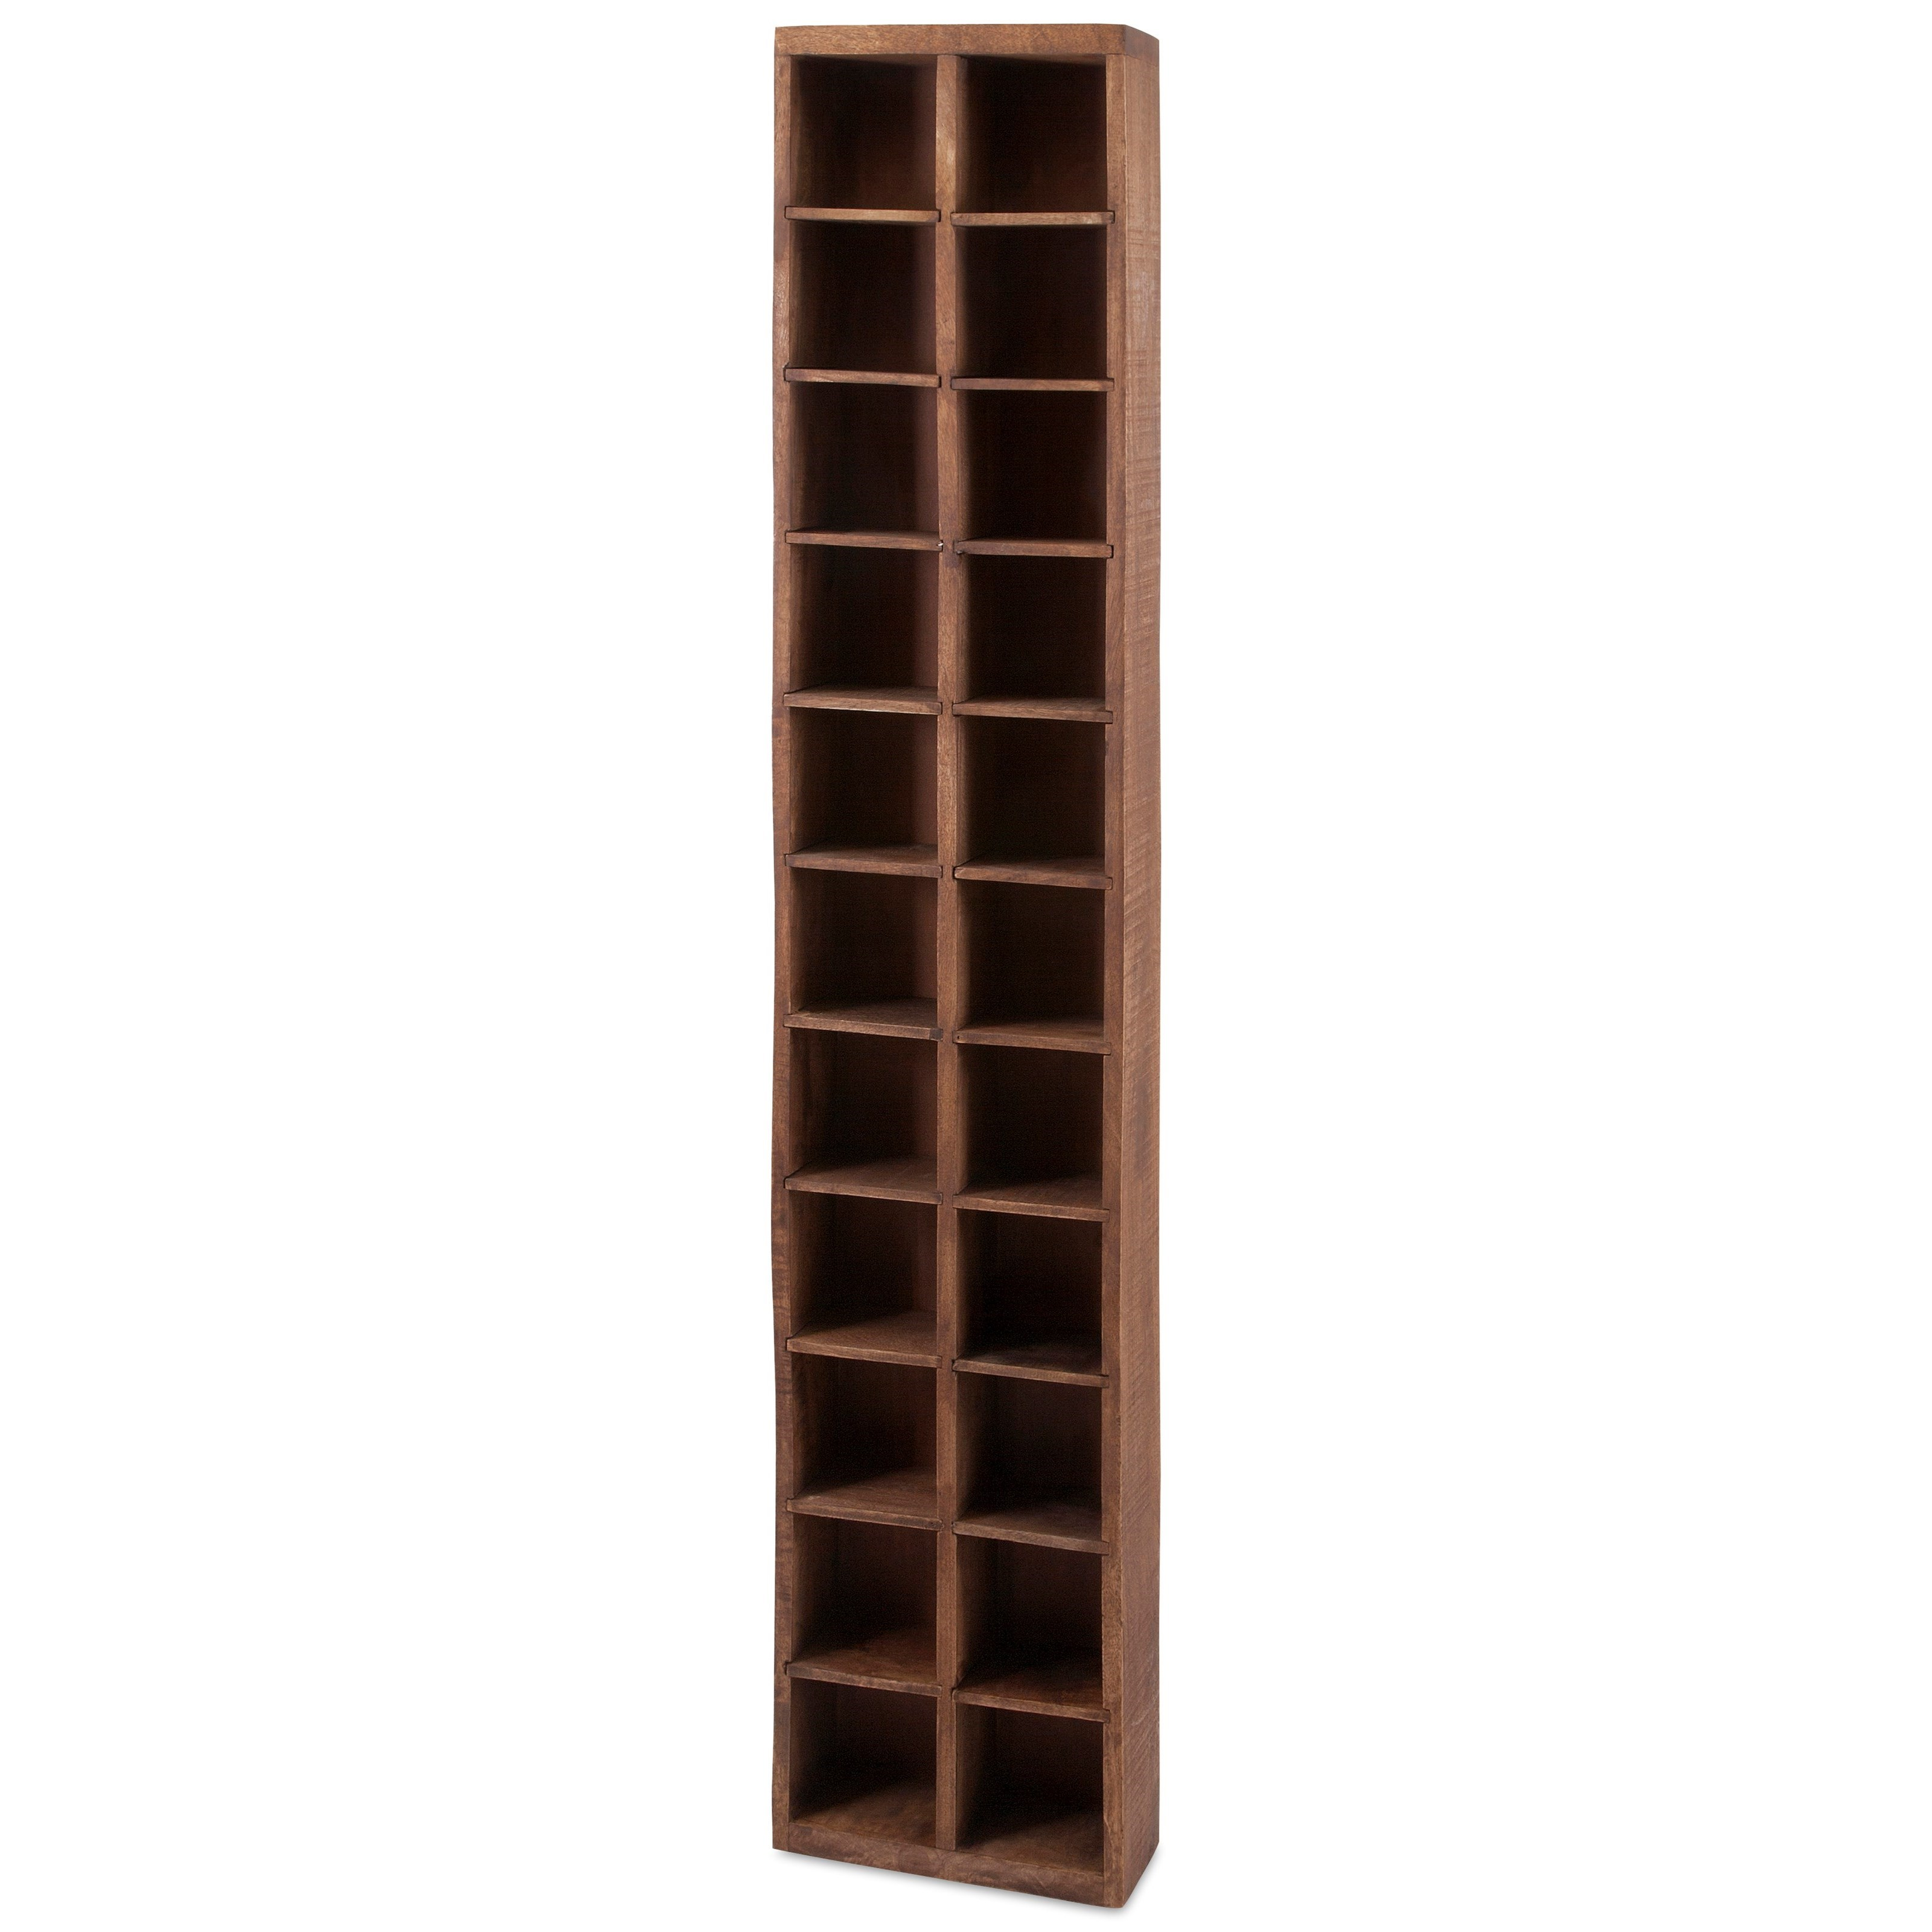 Accent Furniture Harper Cubby Shelf by IMAX Worldwide Home at Alison Craig Home Furnishings